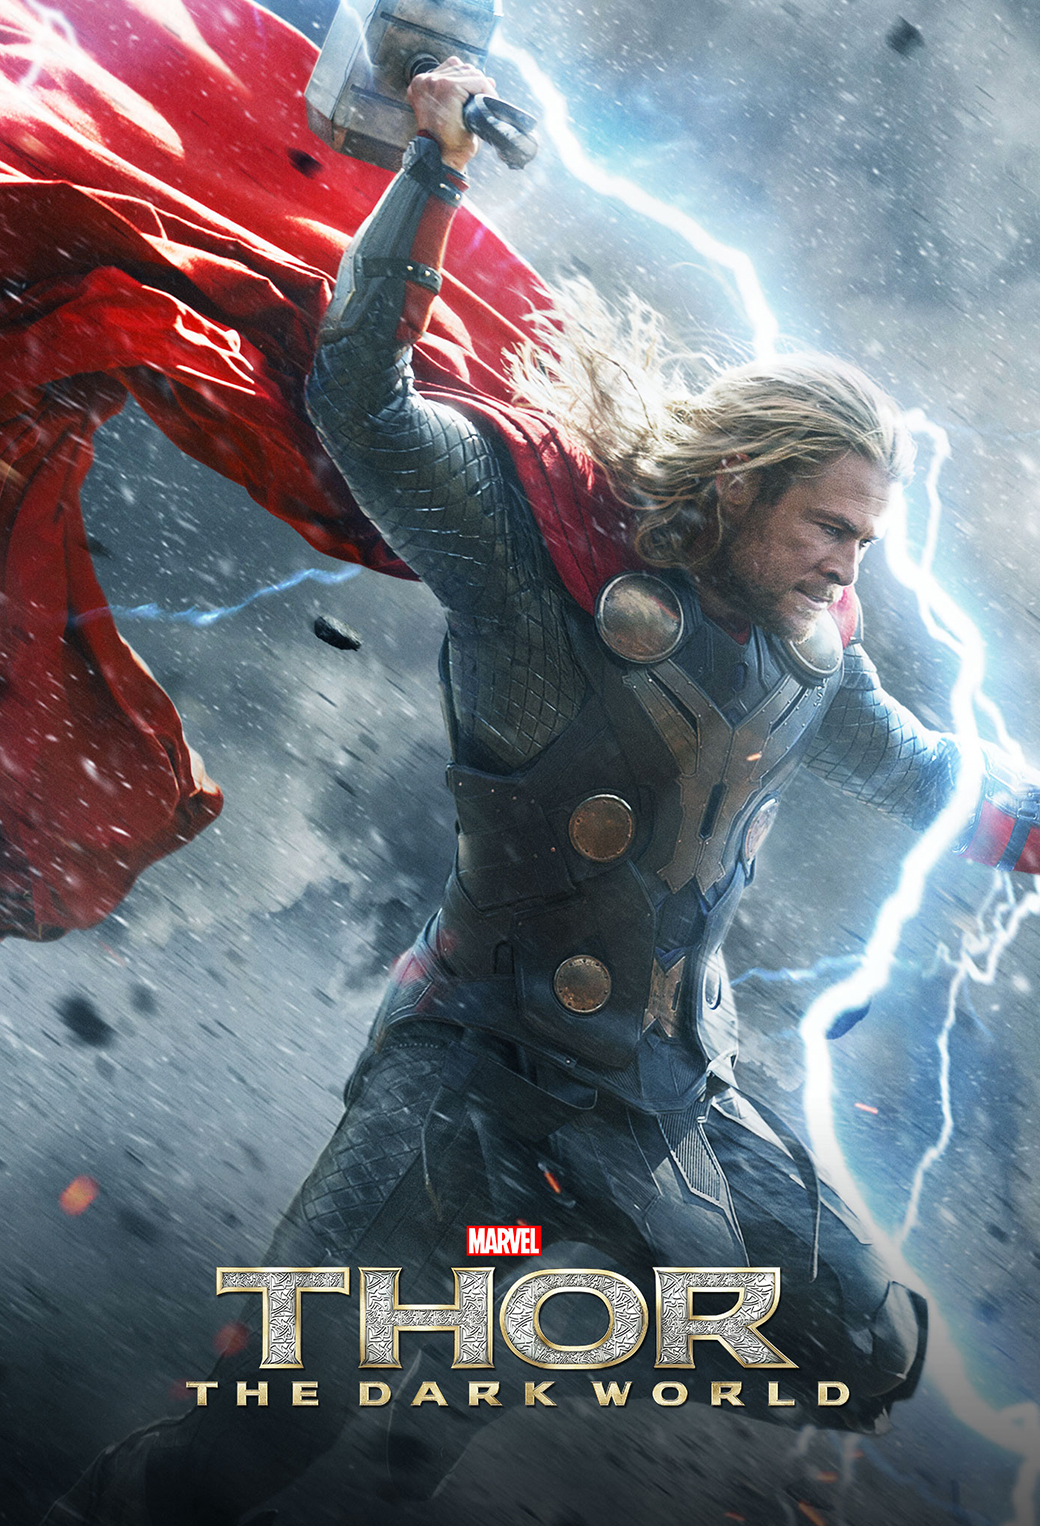 Iphone 4s New Wallpapers Thor The Dark World Wallpaper For Iphone X 8 7 6 Free